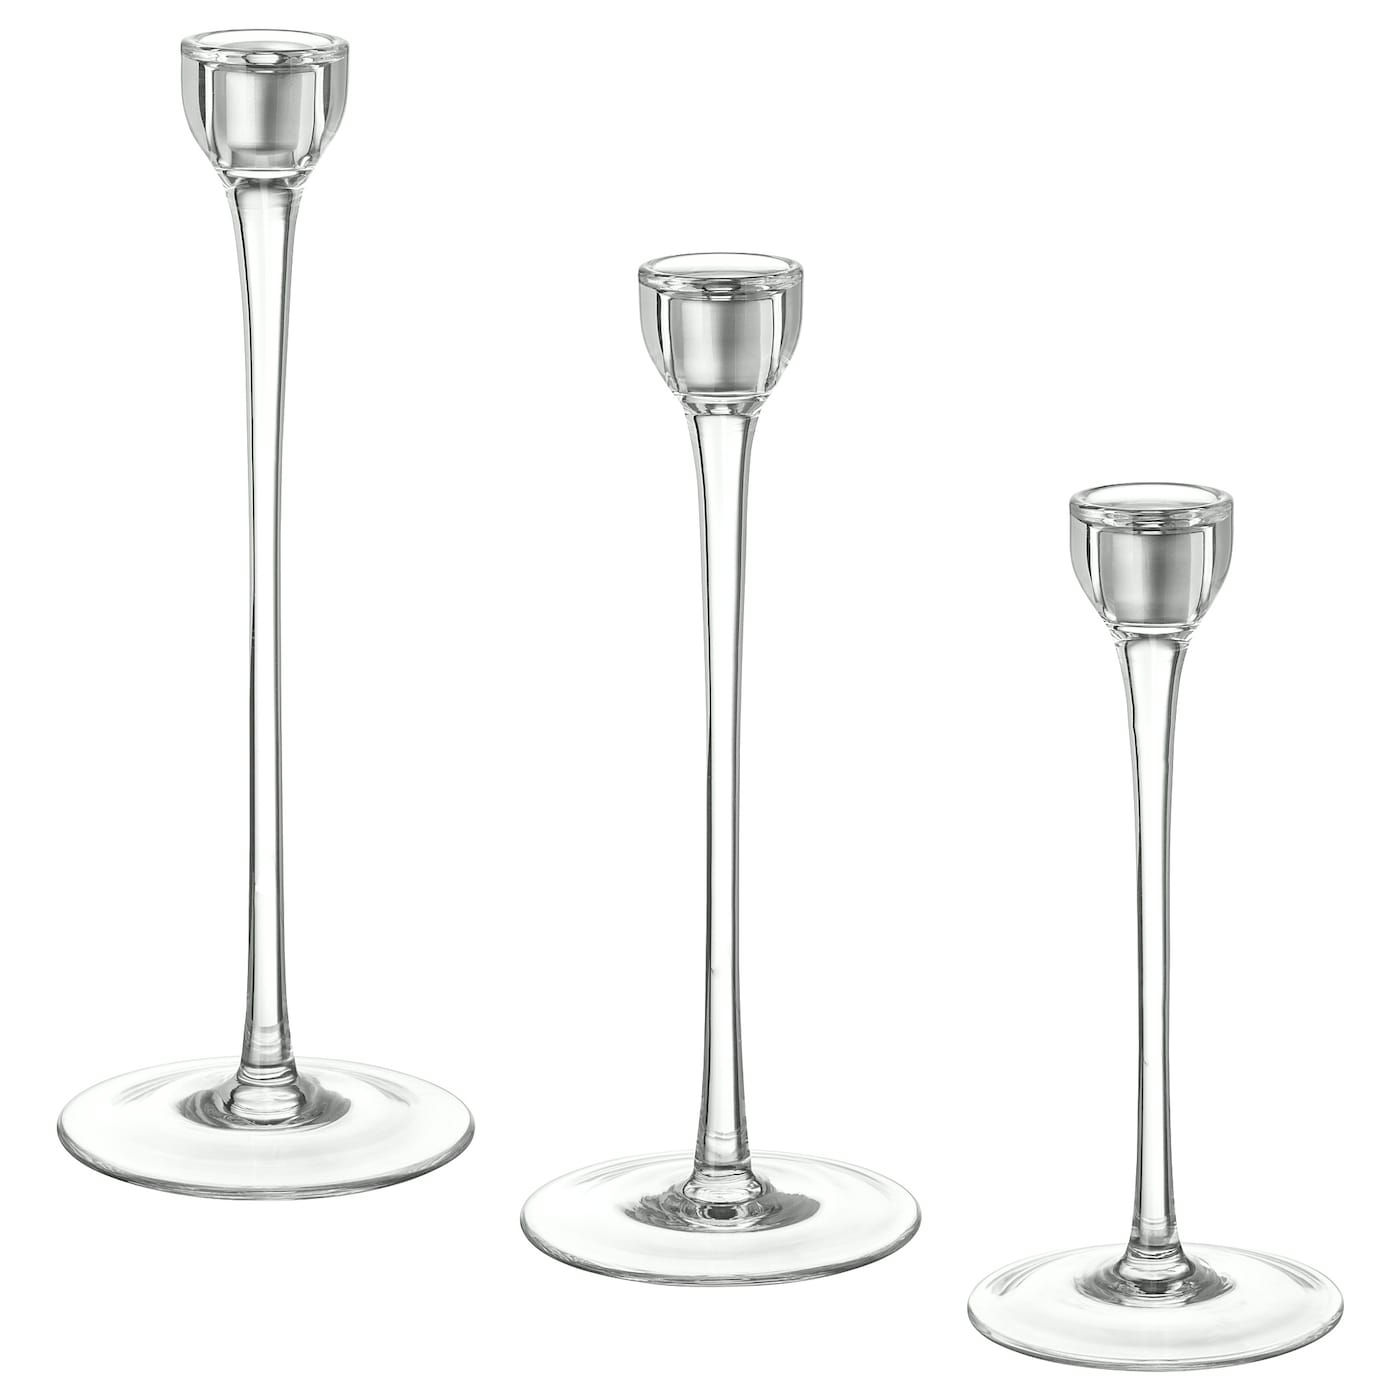 IKEA BLOMSTER candlestick, set of 3